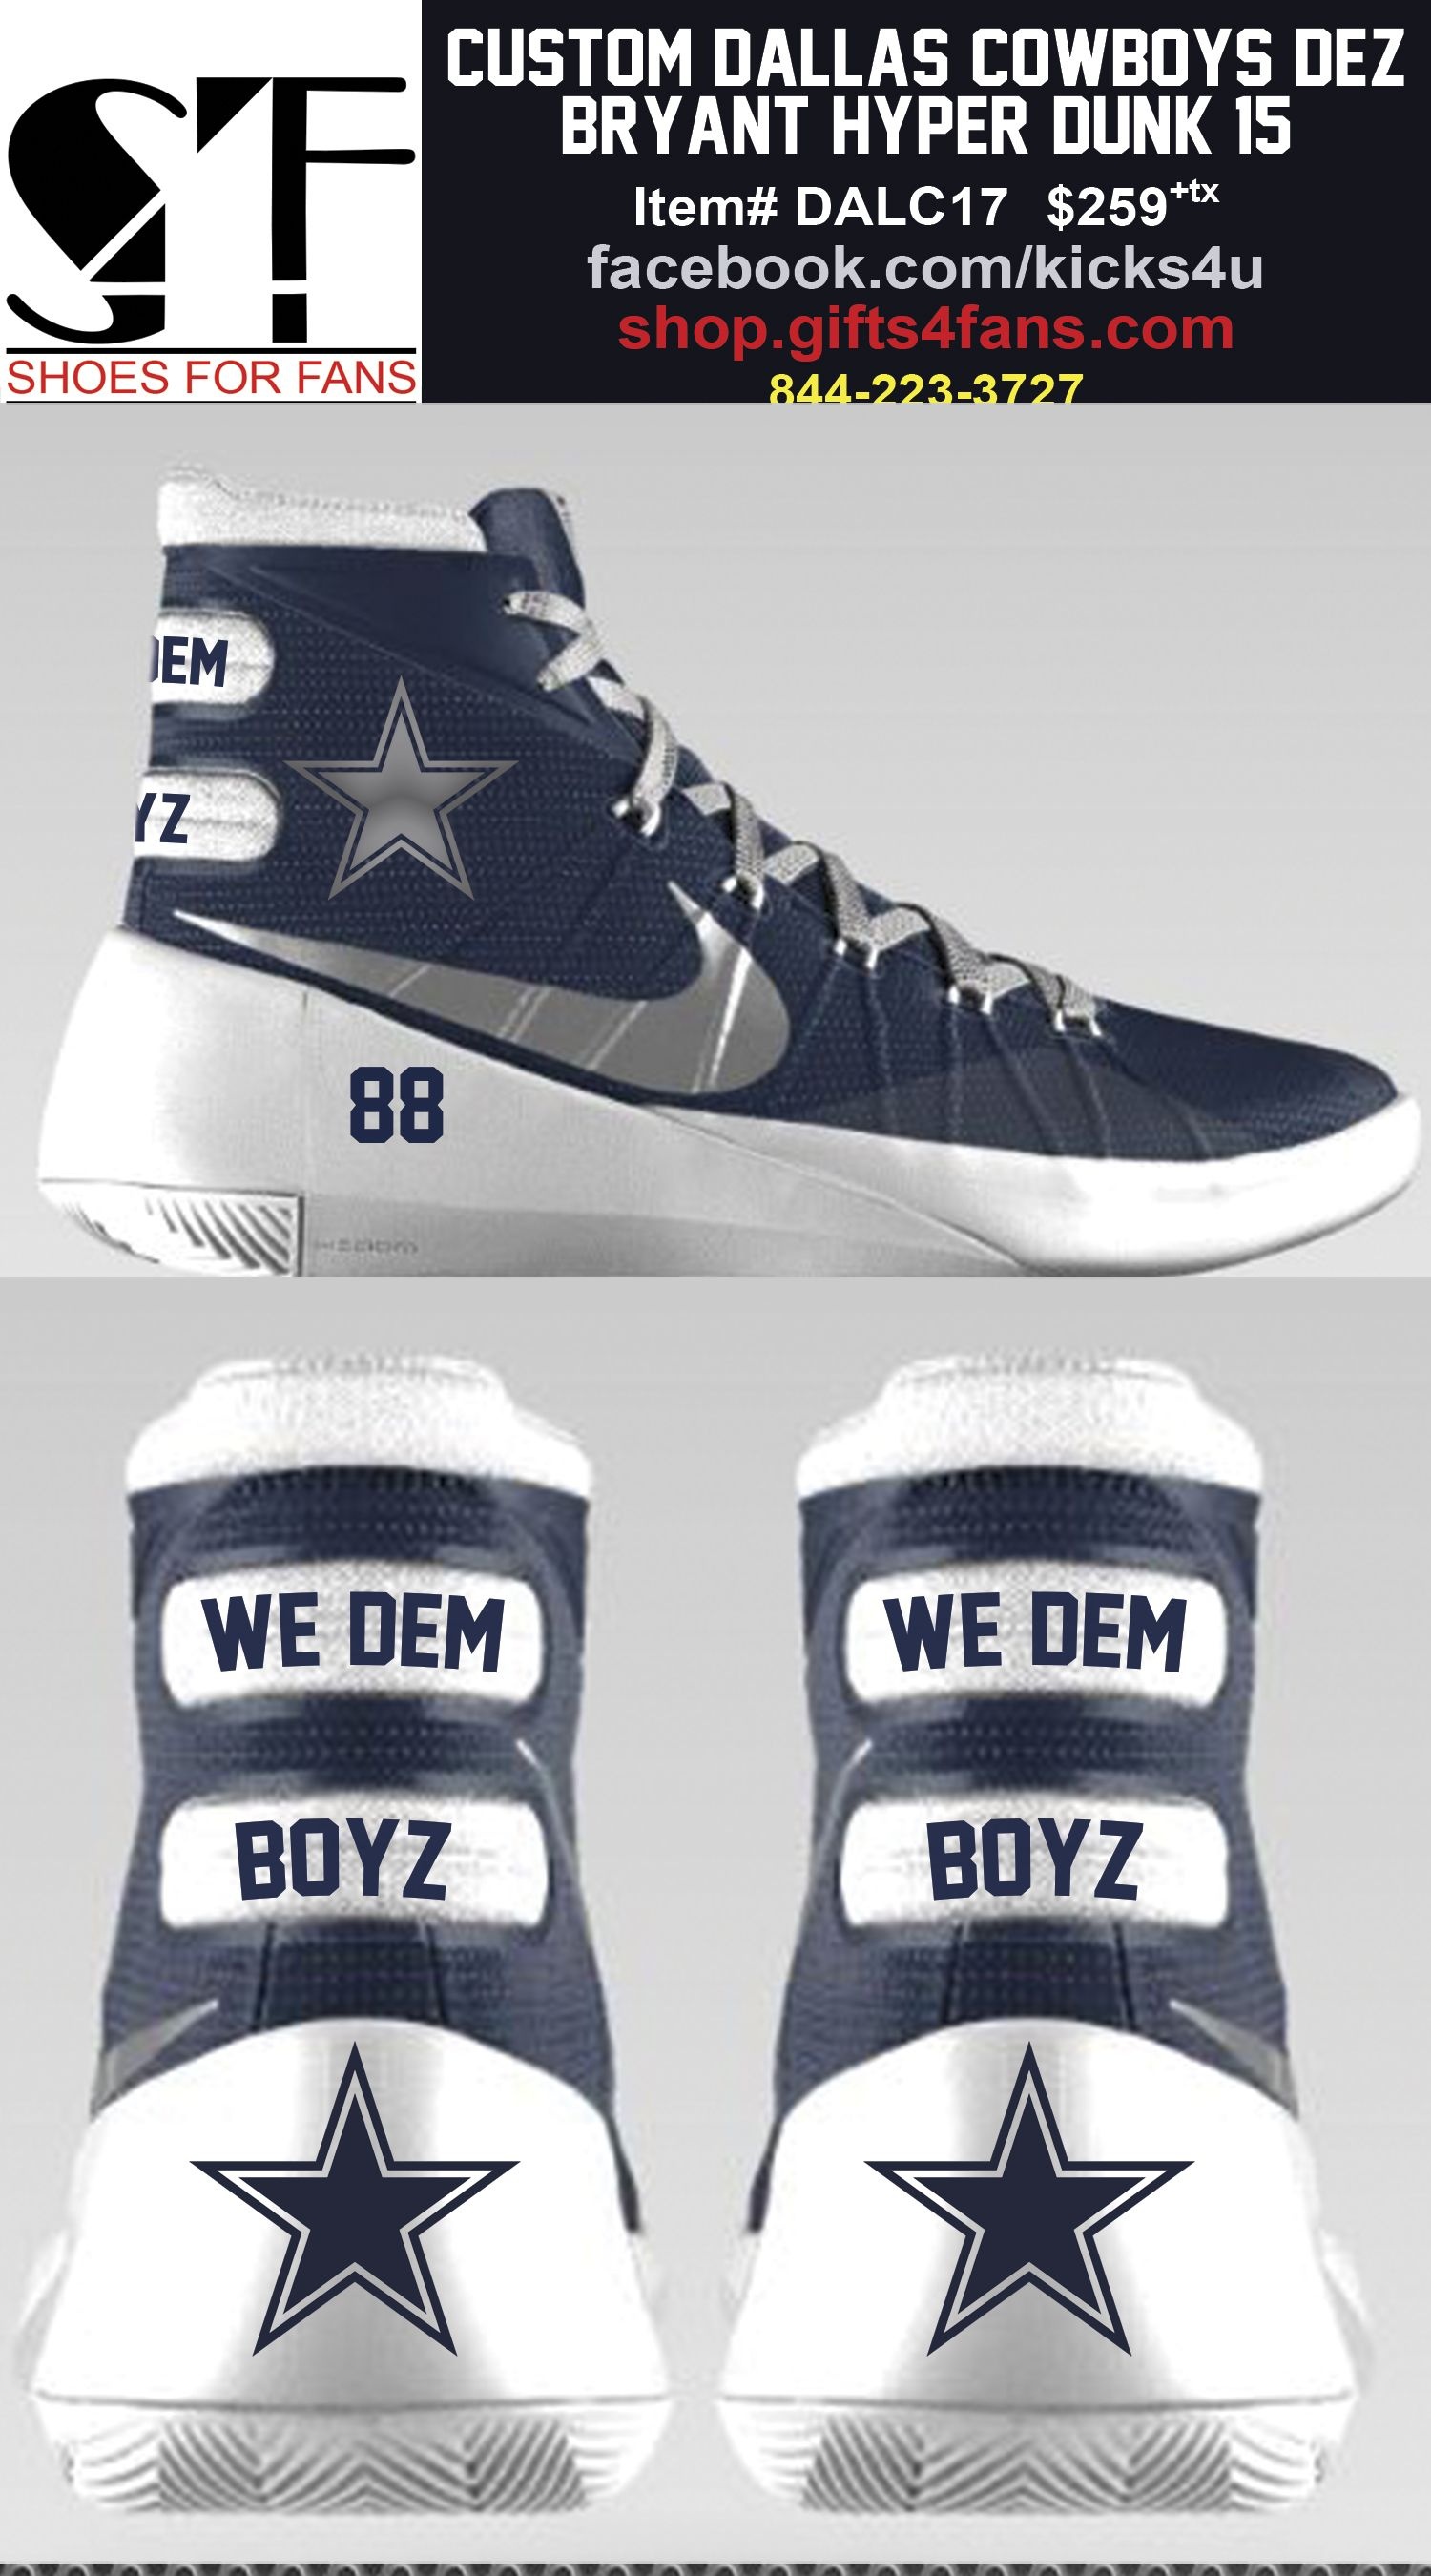 Pin by Shoes4Fans on Dallas Cowboys Footwear